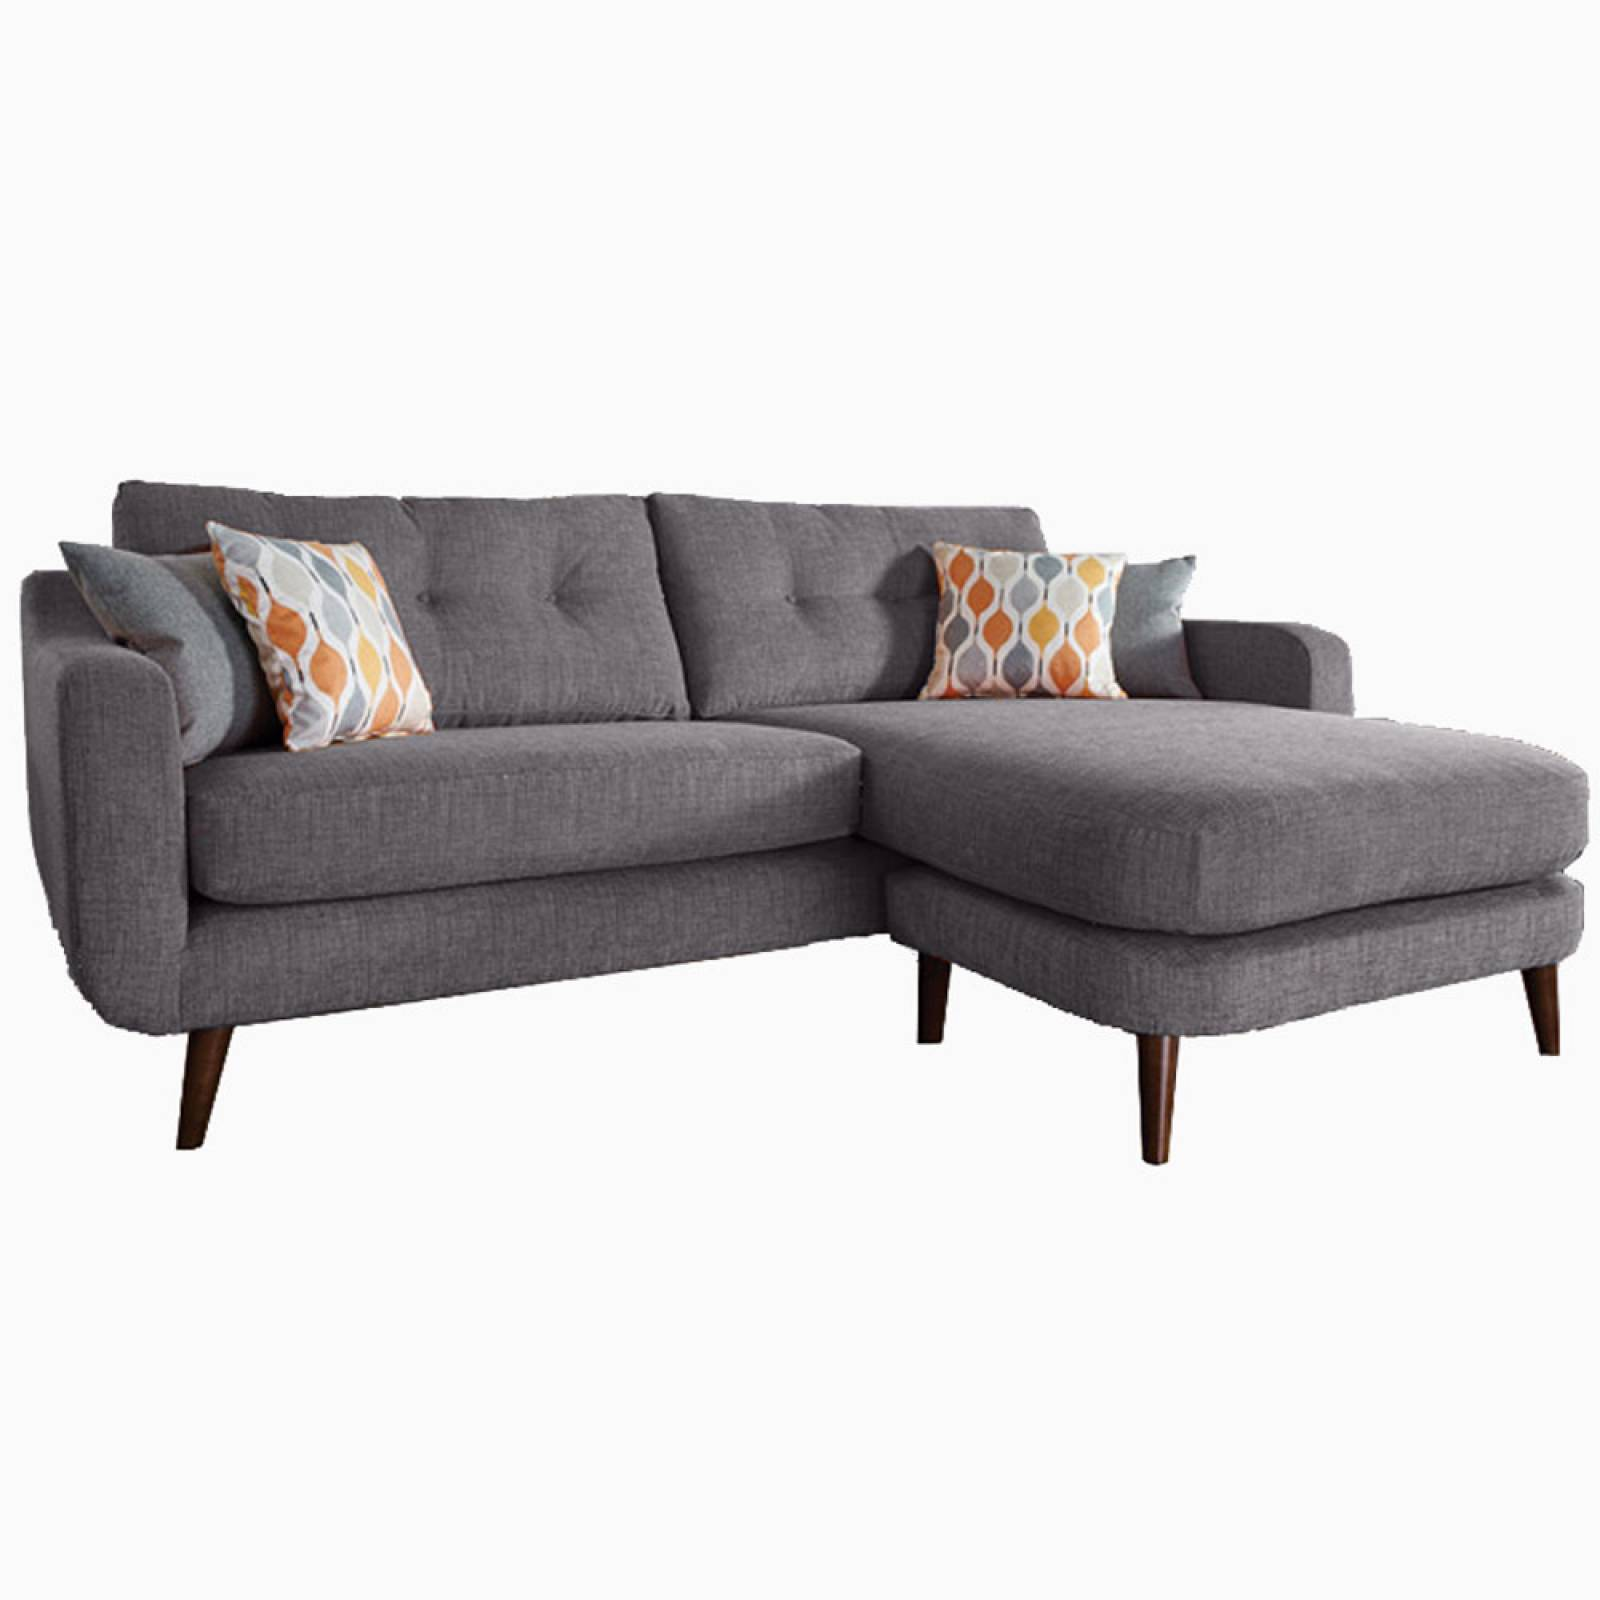 Lisbon Lounger Sofa by Whitemeadow - Fabric Grade C thumbnails